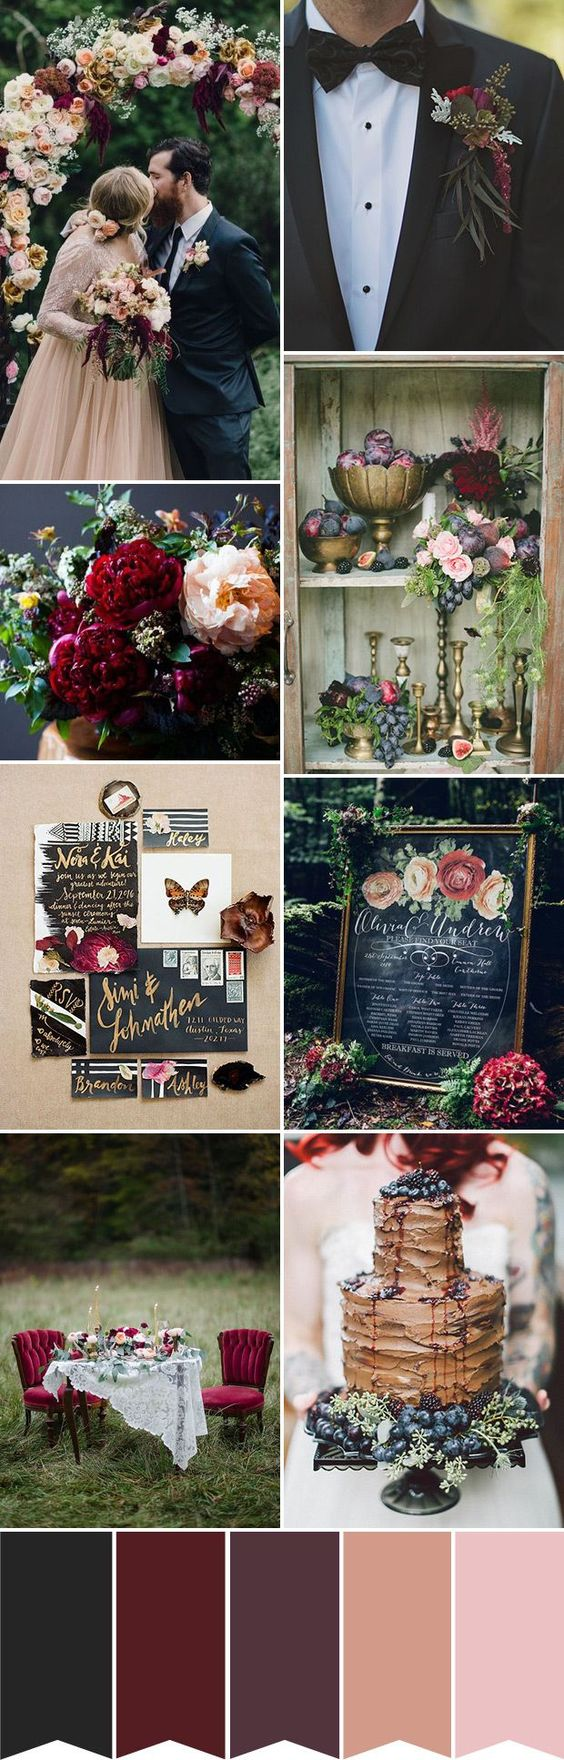 A Berry Red and Black Winter Wedding Palette | www.onefabday.com: